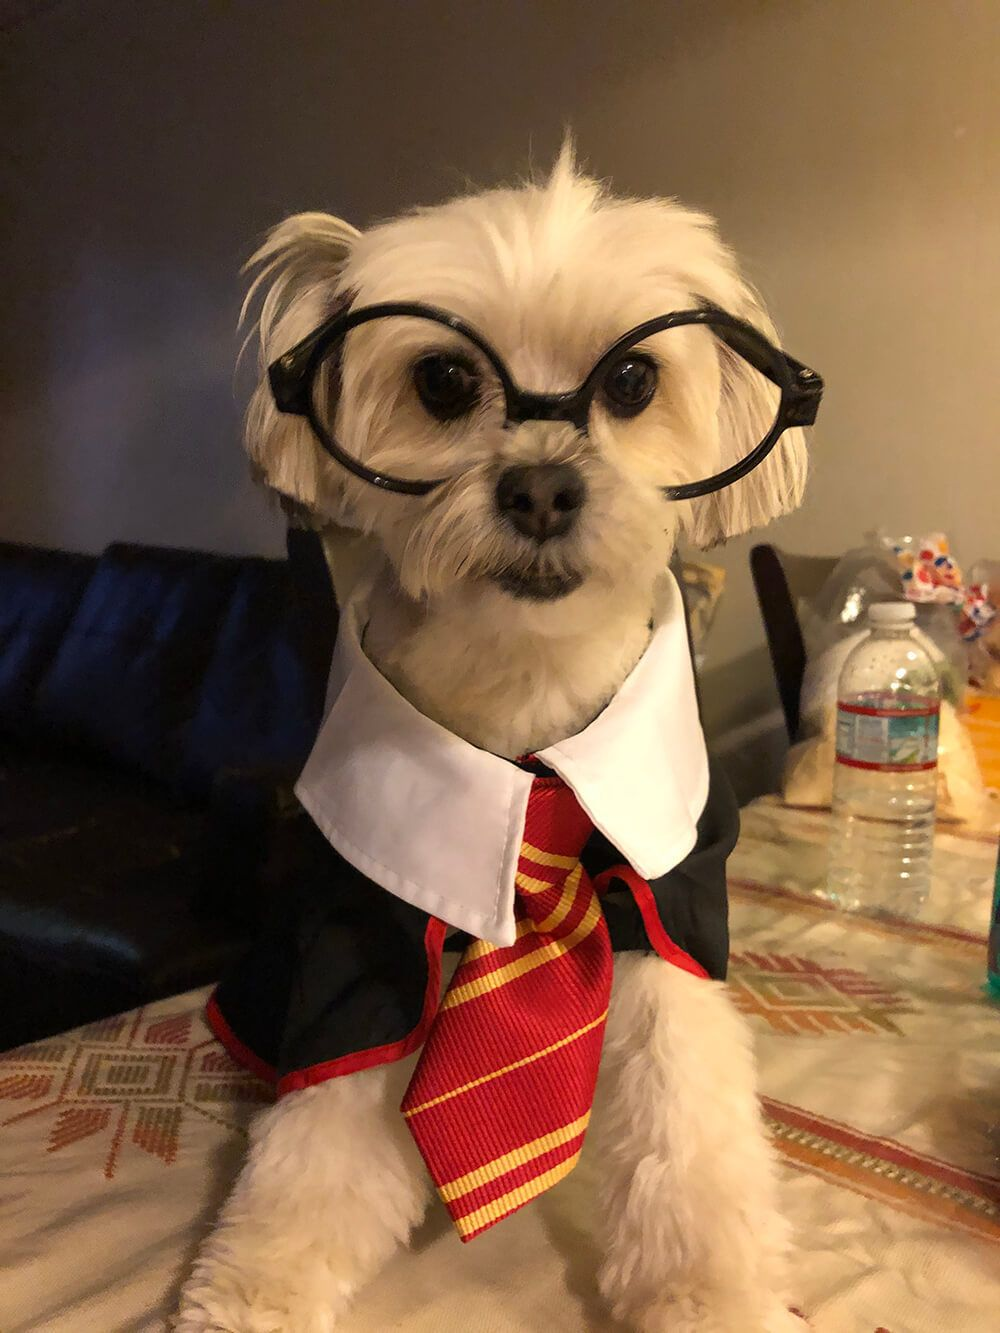 Buddy as Harry Potter